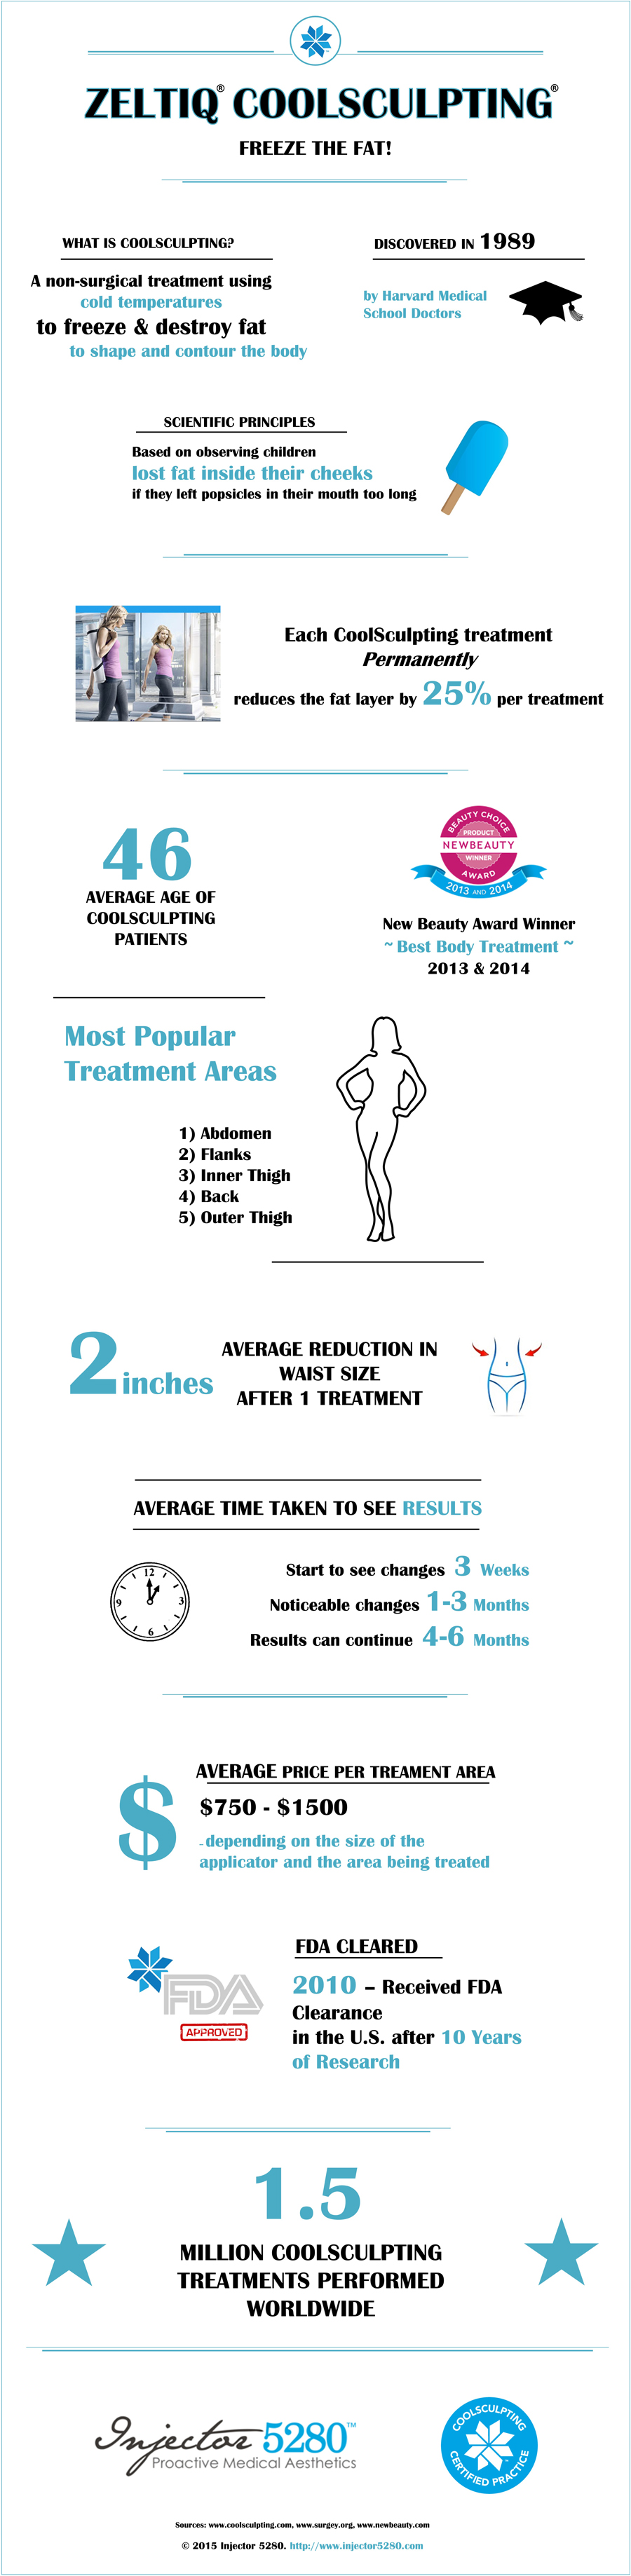 zeltiq coolsculpting infographic